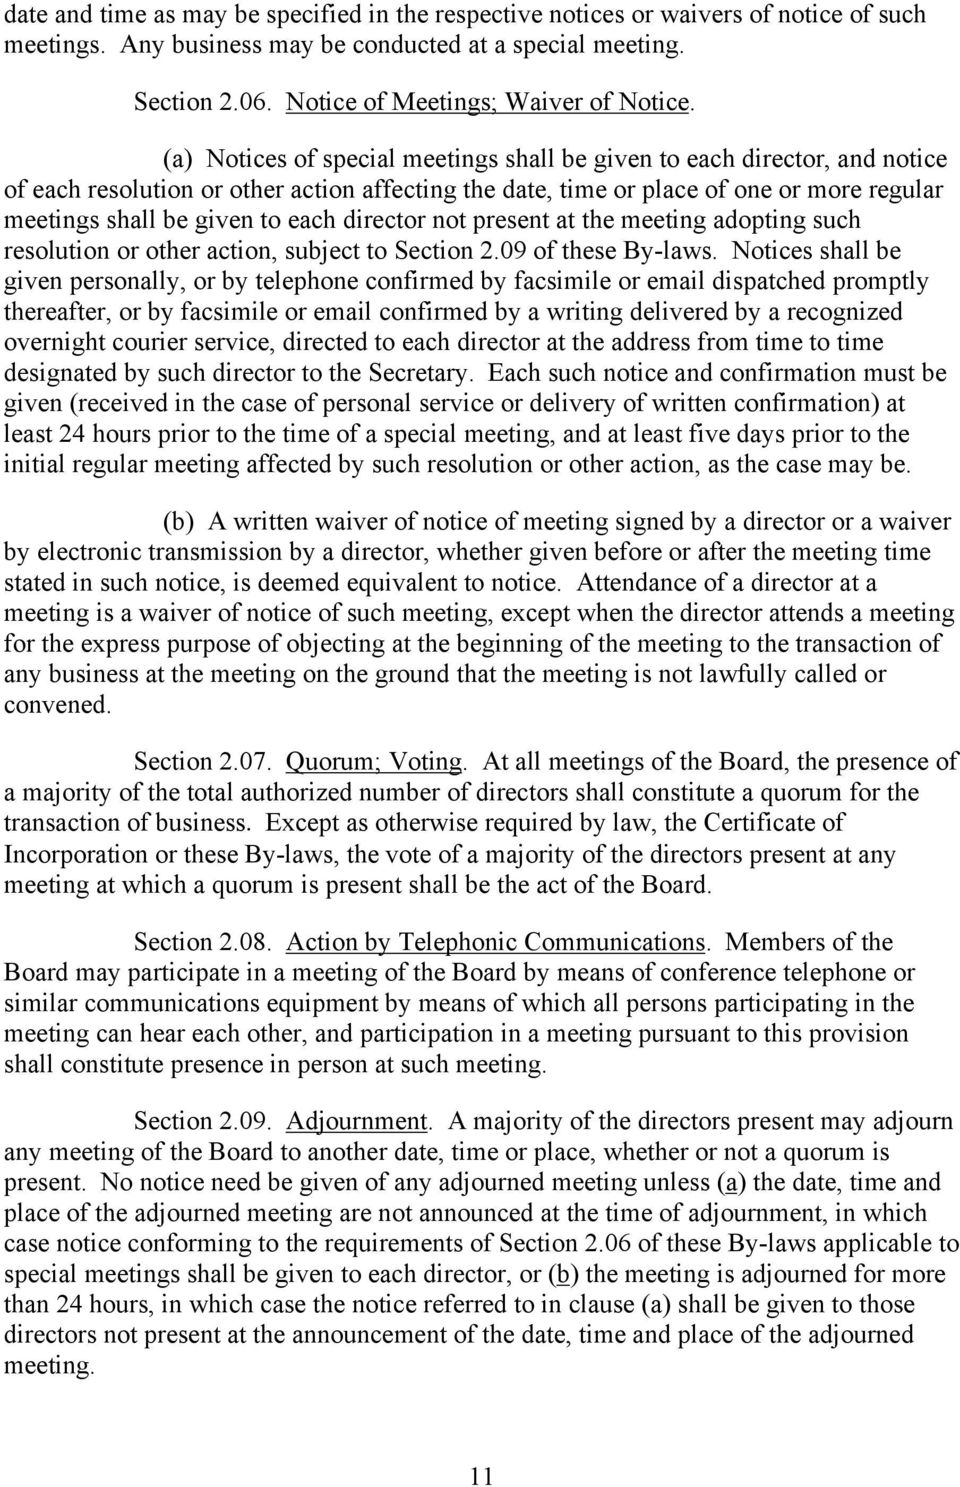 (a) Notices of special meetings shall be given to each director, and notice of each resolution or other action affecting the date, time or place of one or more regular meetings shall be given to each